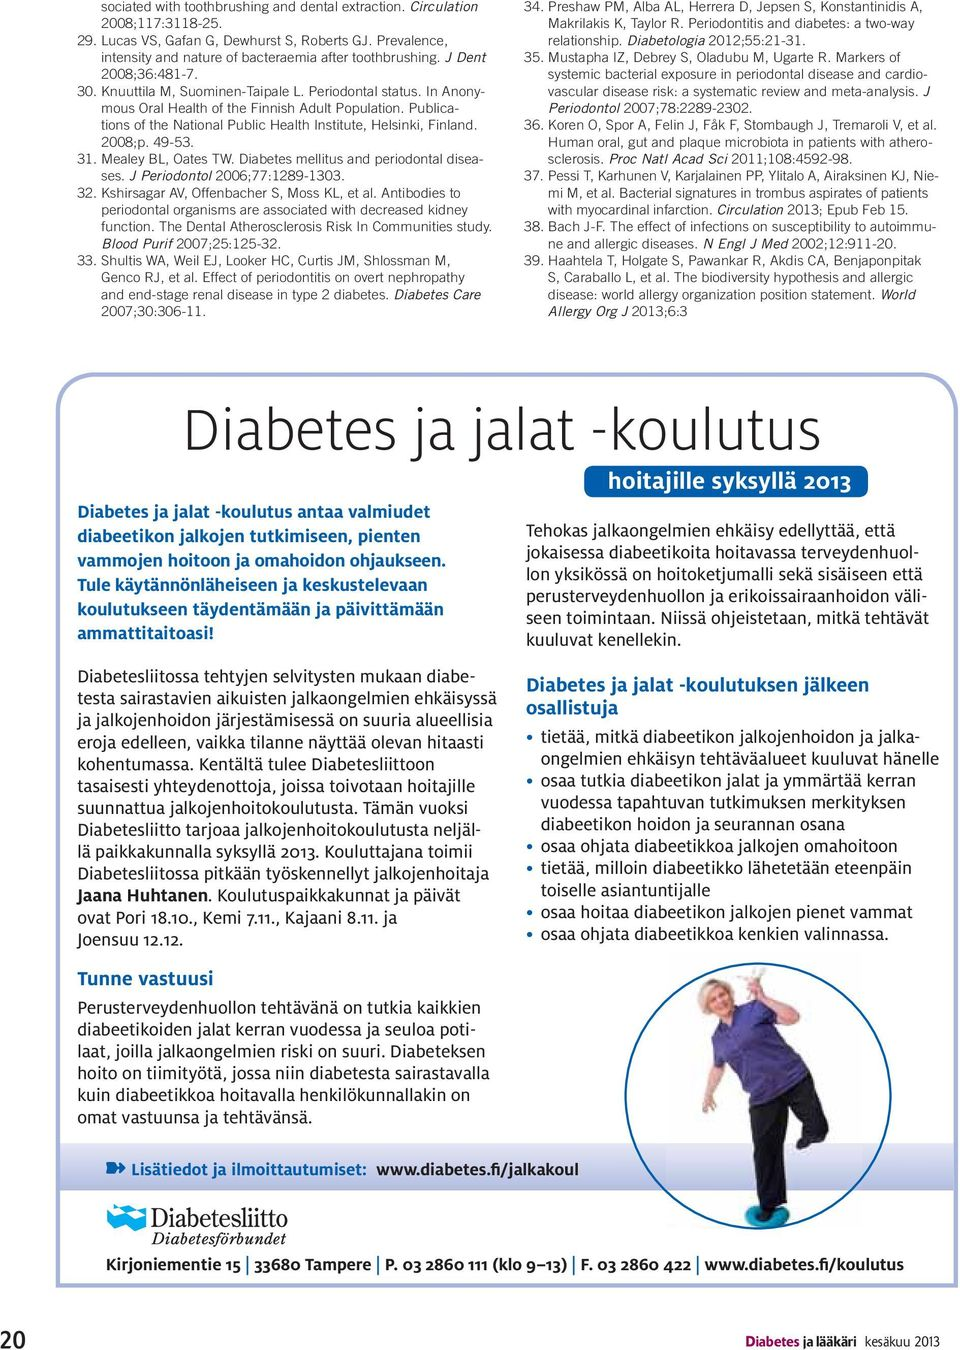 Publications of the National Public Health Institute, Helsinki, Finland. 2008;p. 49-53. 31. Mealey BL, Oates TW. Diabetes mellitus and periodontal diseases. J Periodontol 2006;77:1289-1303. 32.